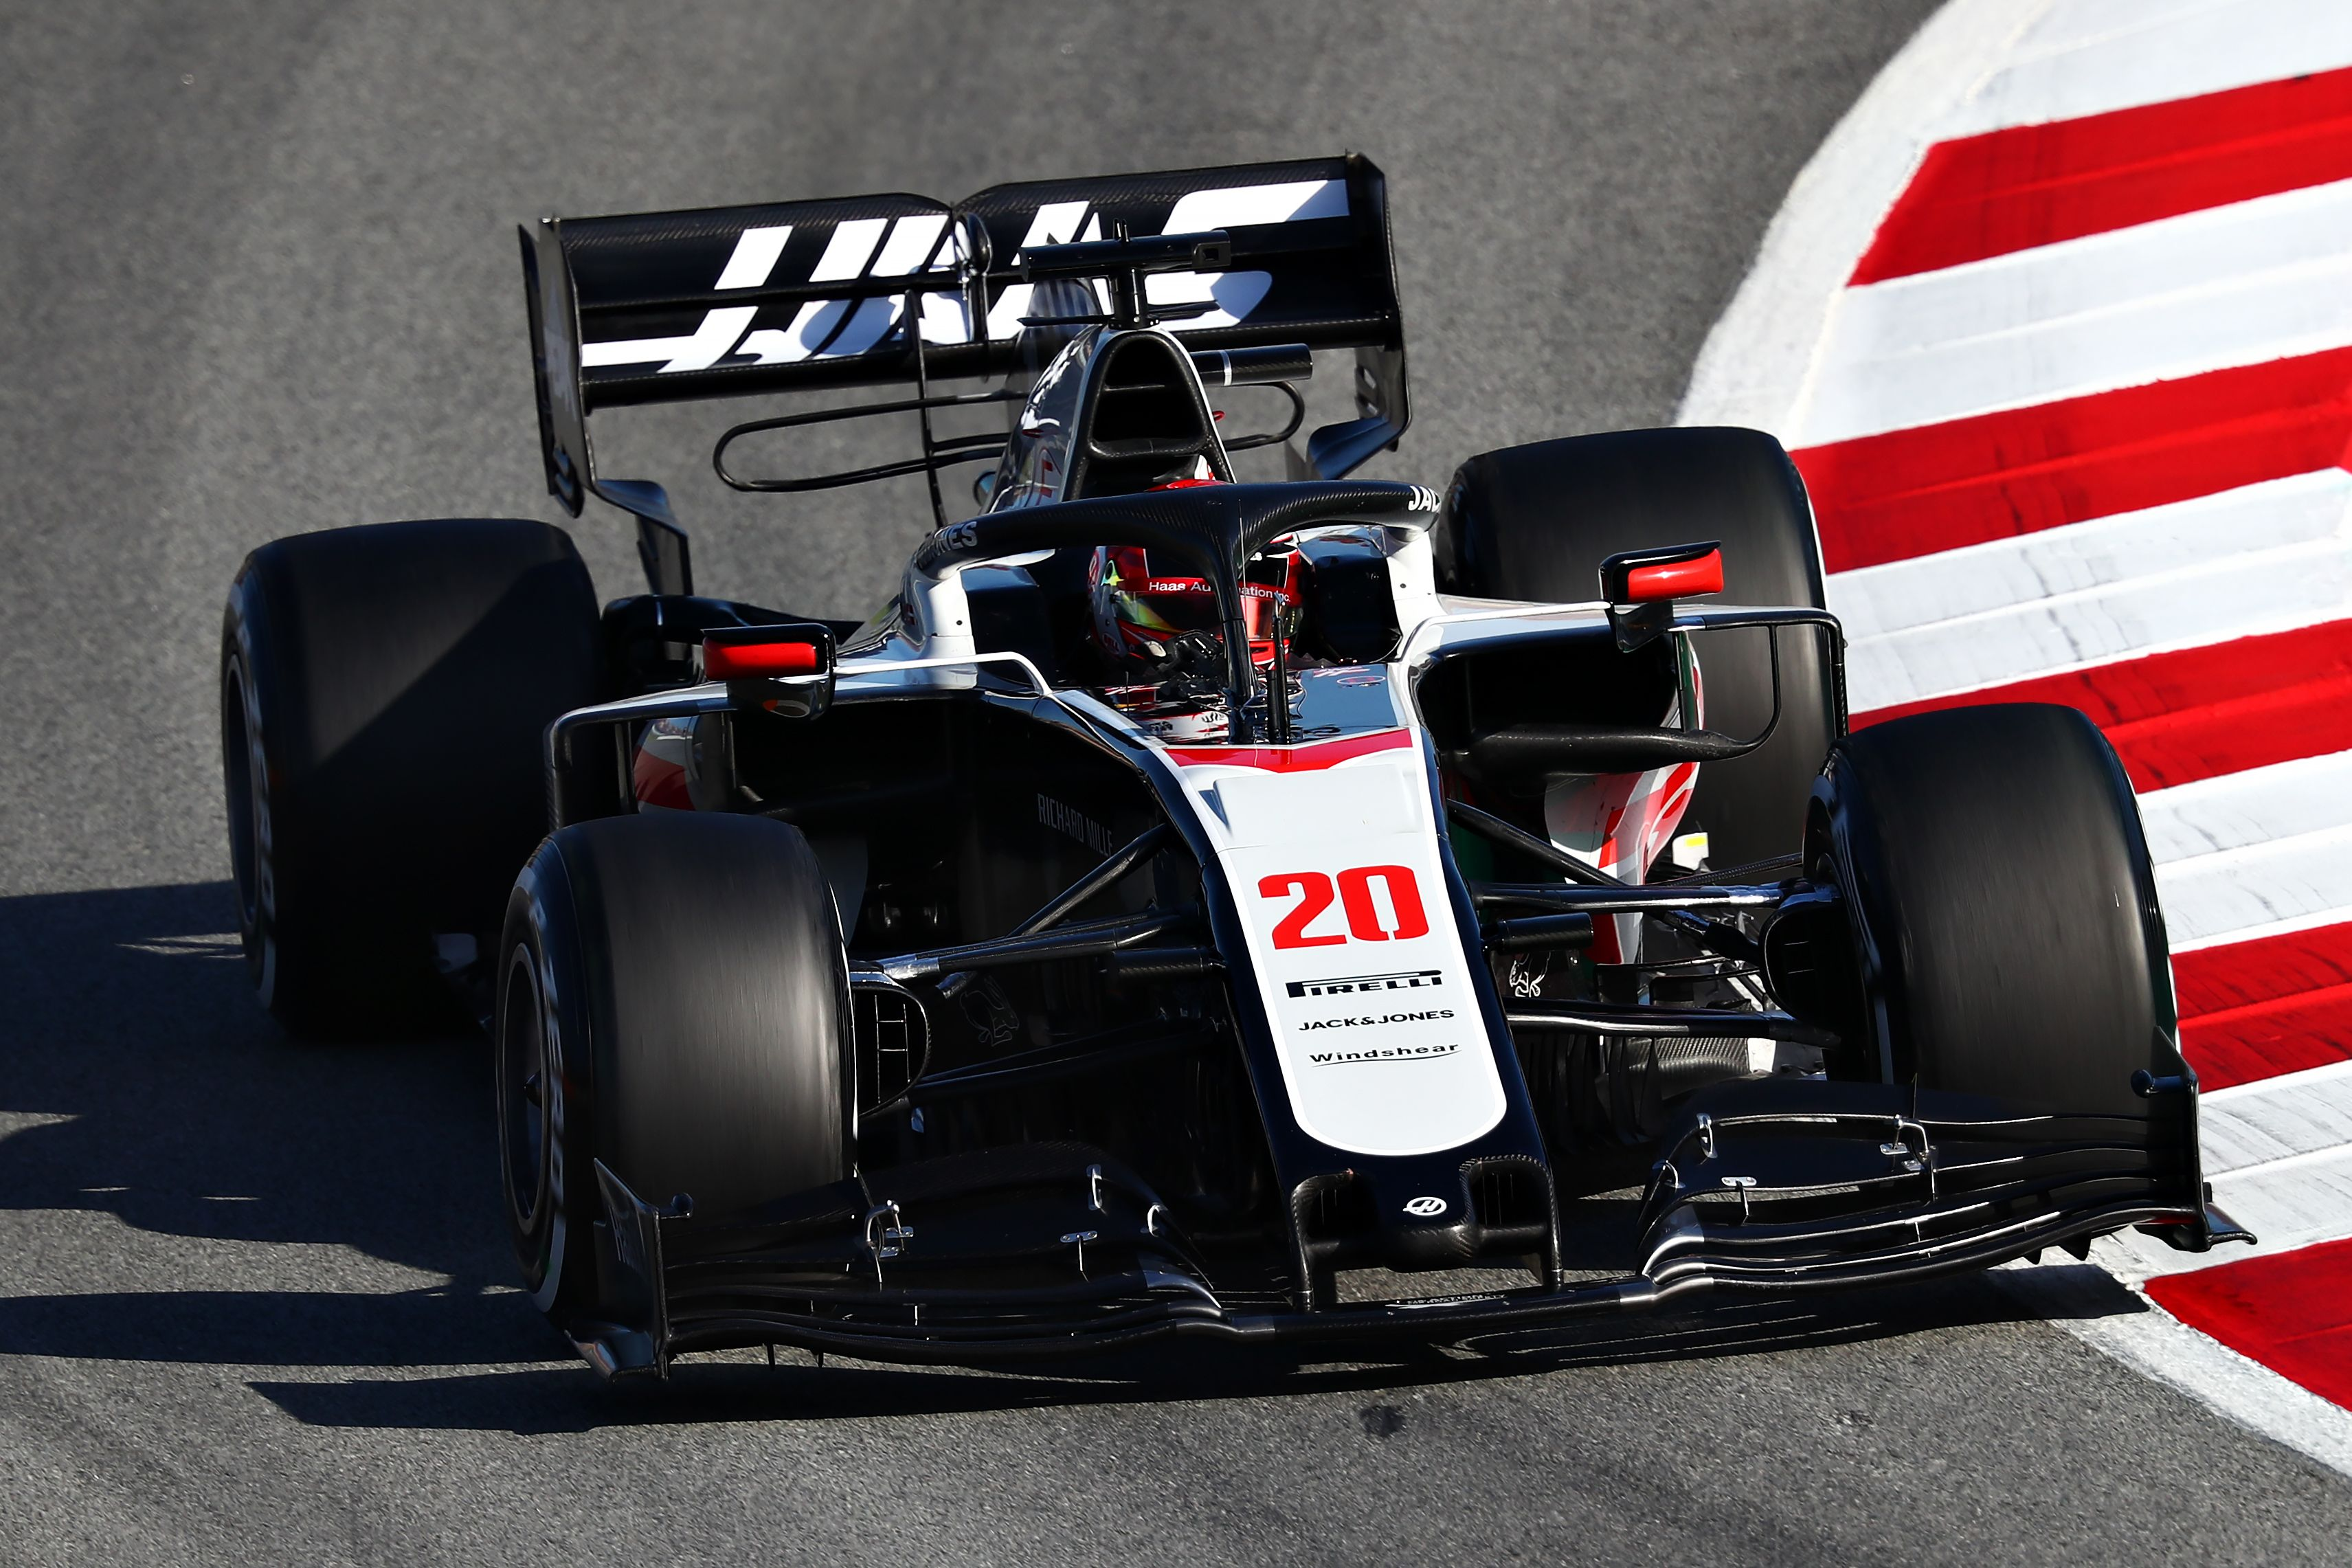 Haas F1 Driver Kevin Magnussen S Hopes Of Move To Ferrari Dashed By Poor Performance